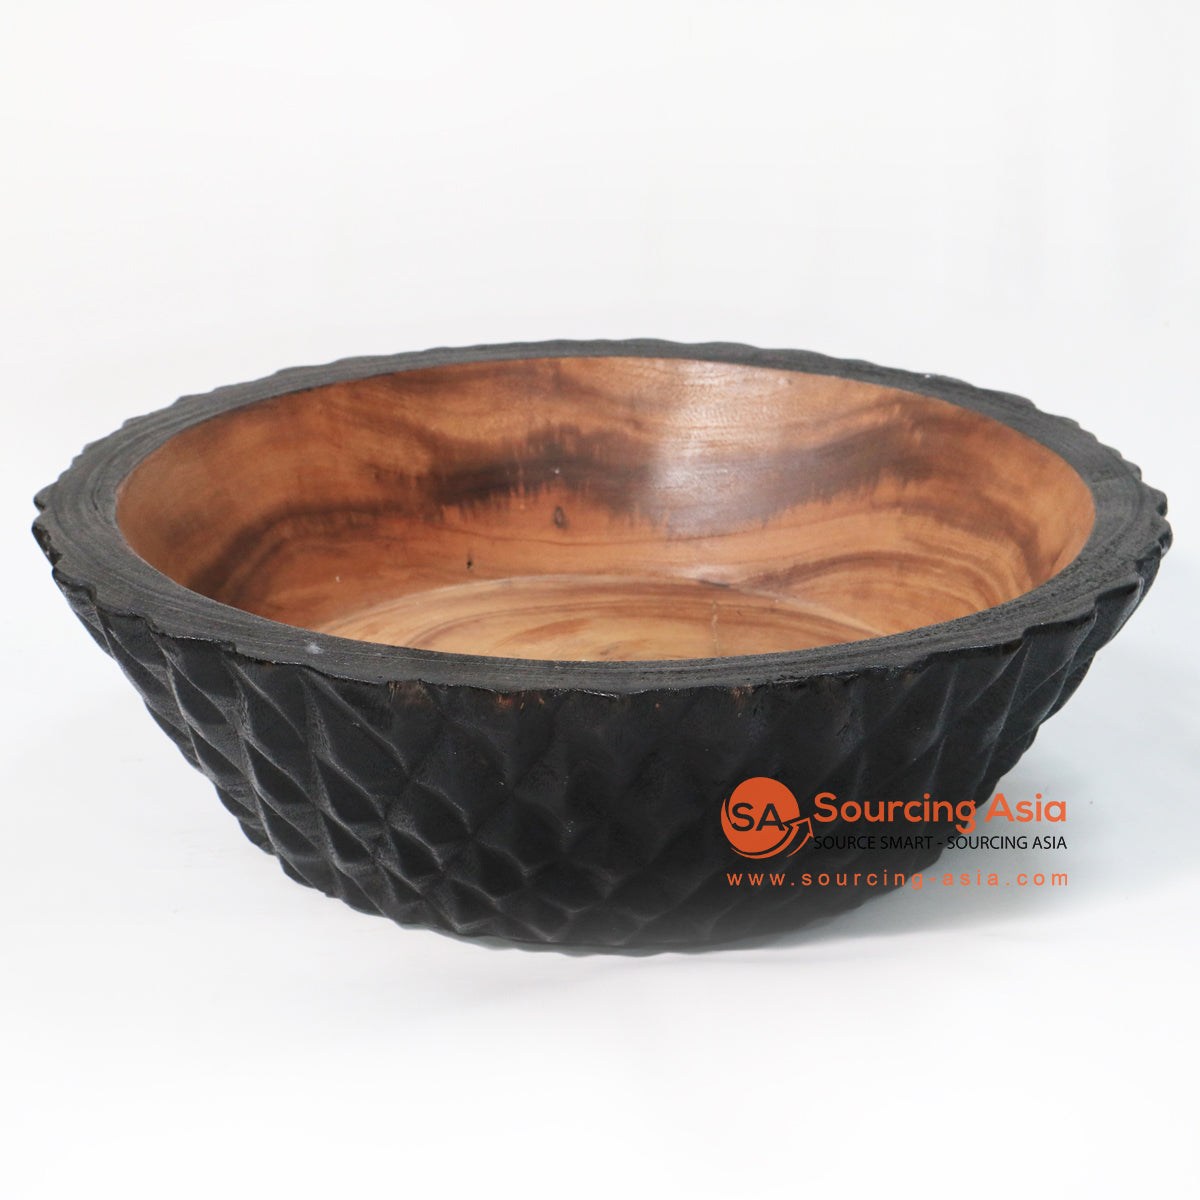 BMWC054 SUAR WOOD SERVING BOWL